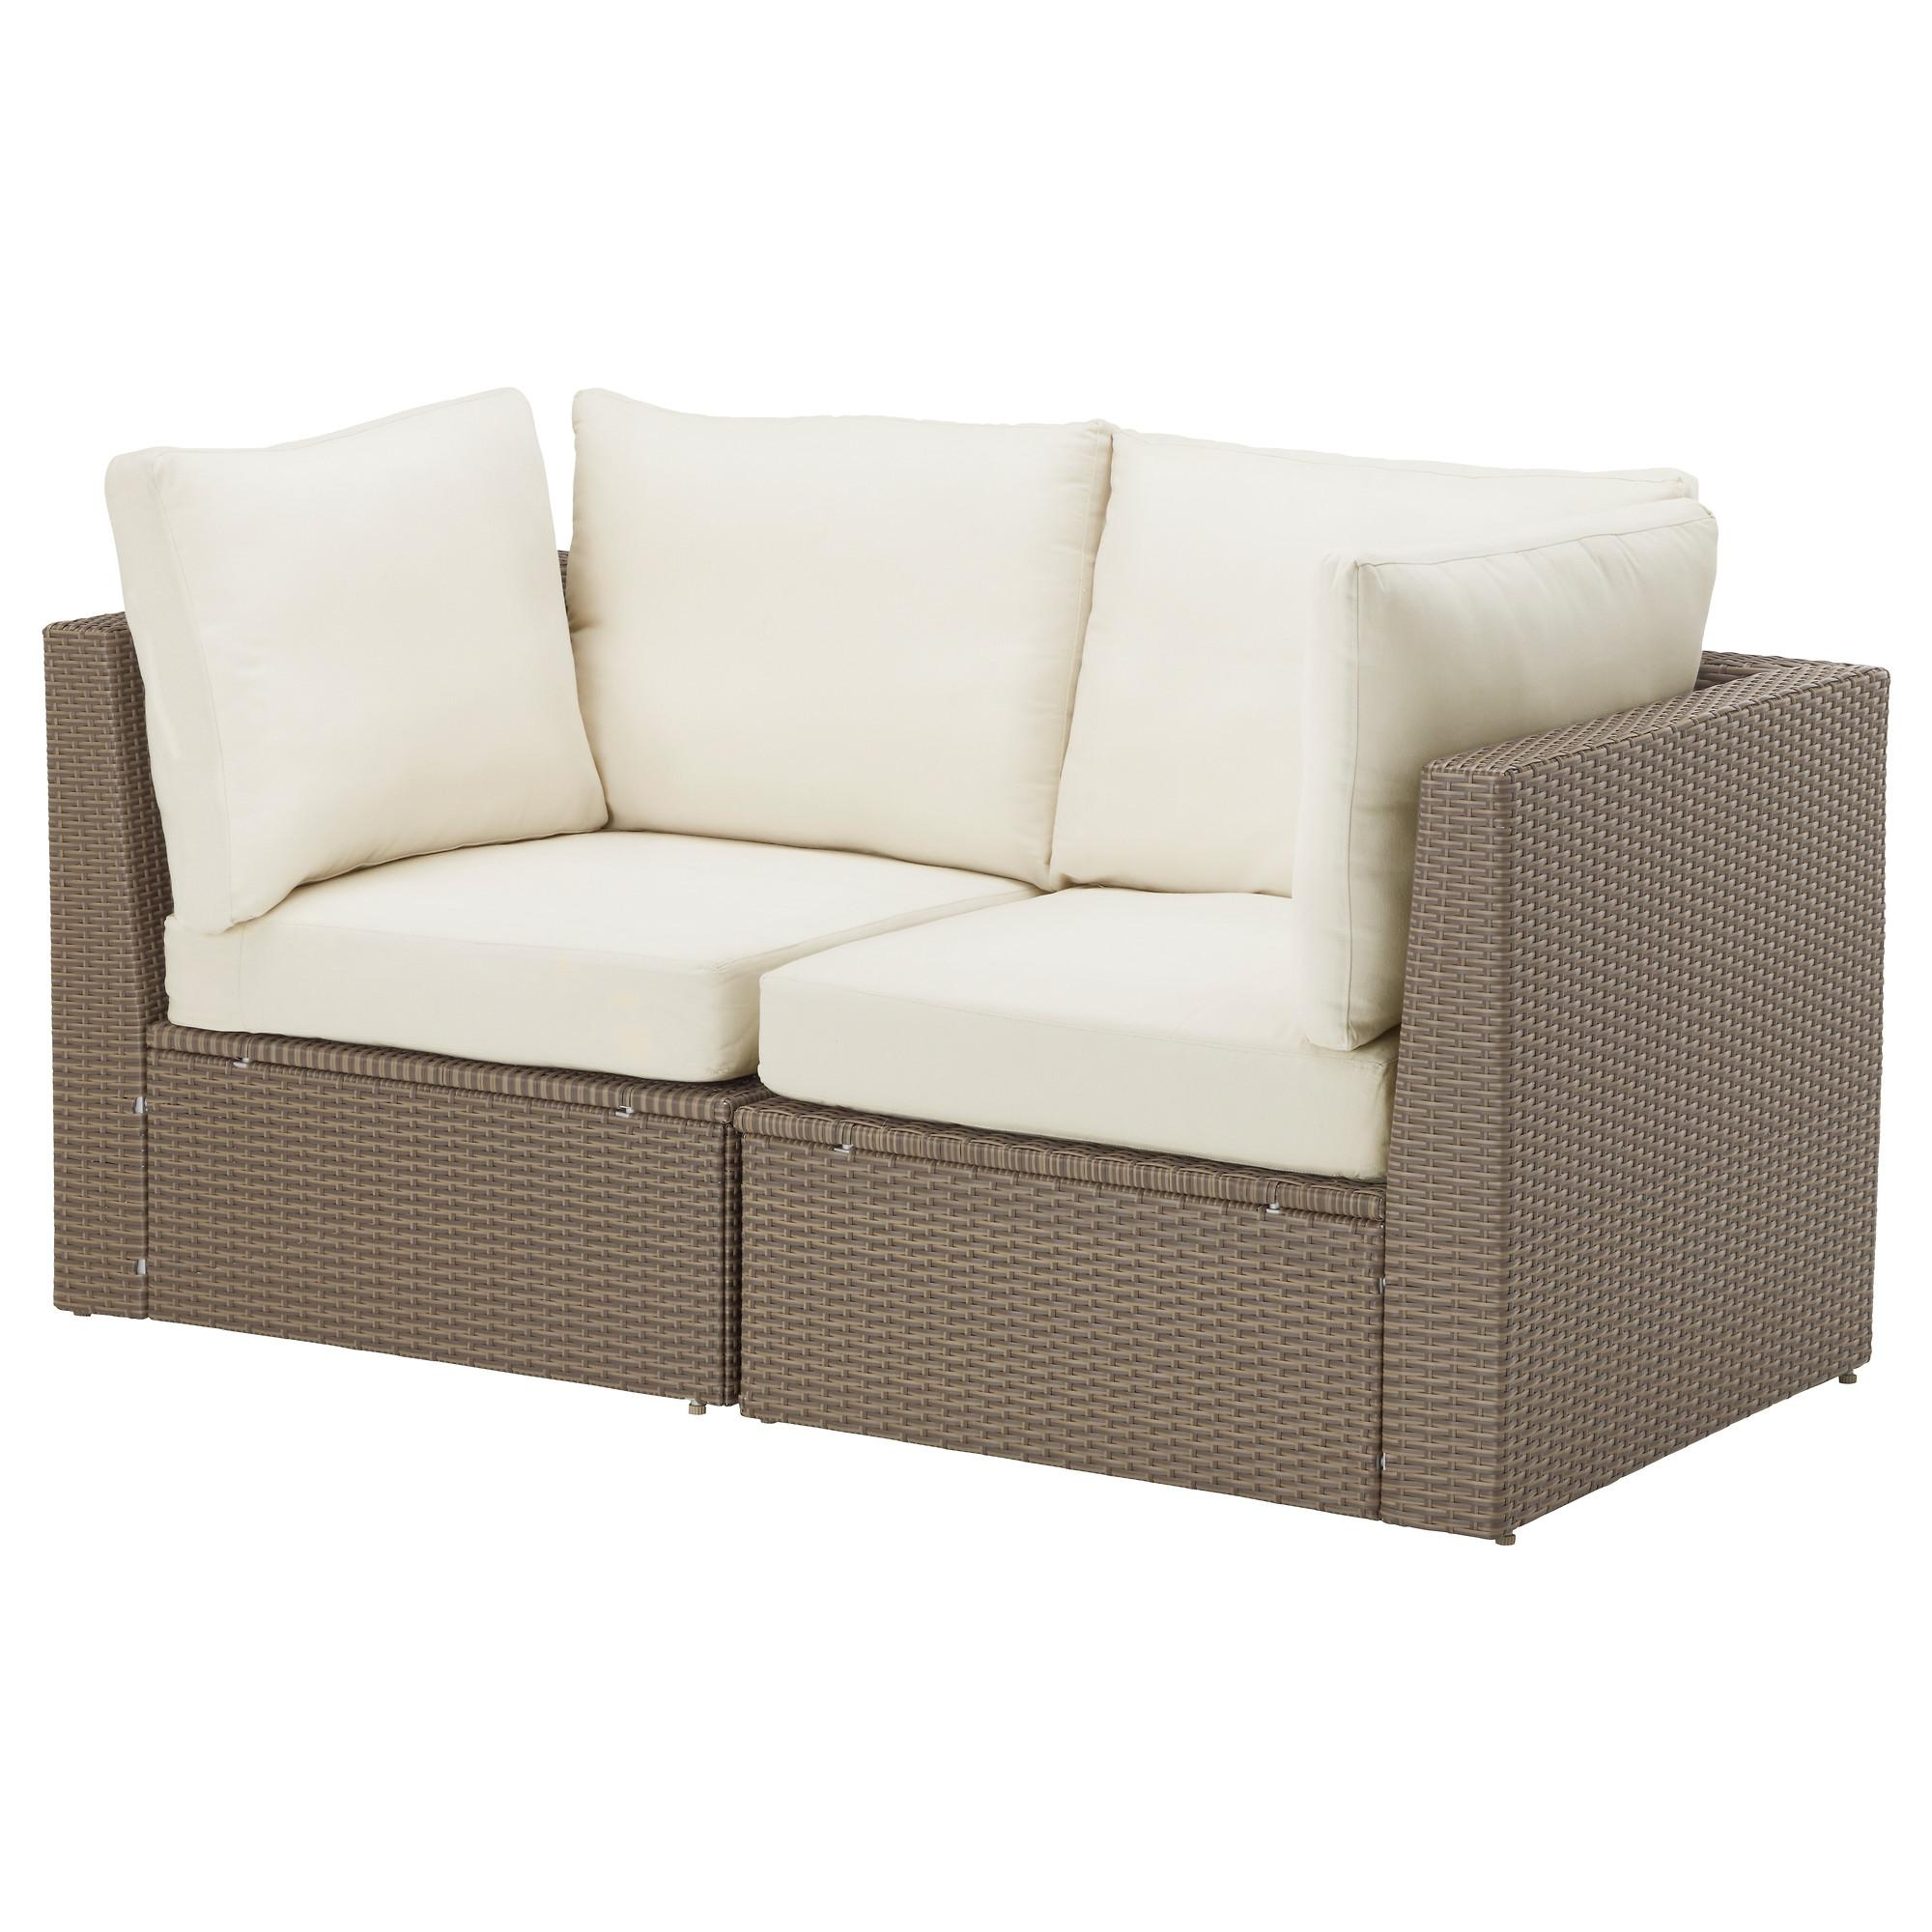 Arholma 2 Seat Sofa, Outdoor Brown/beige 152X76X66 Cm – Ikea With Sofa Chairs Ikea (Image 2 of 20)